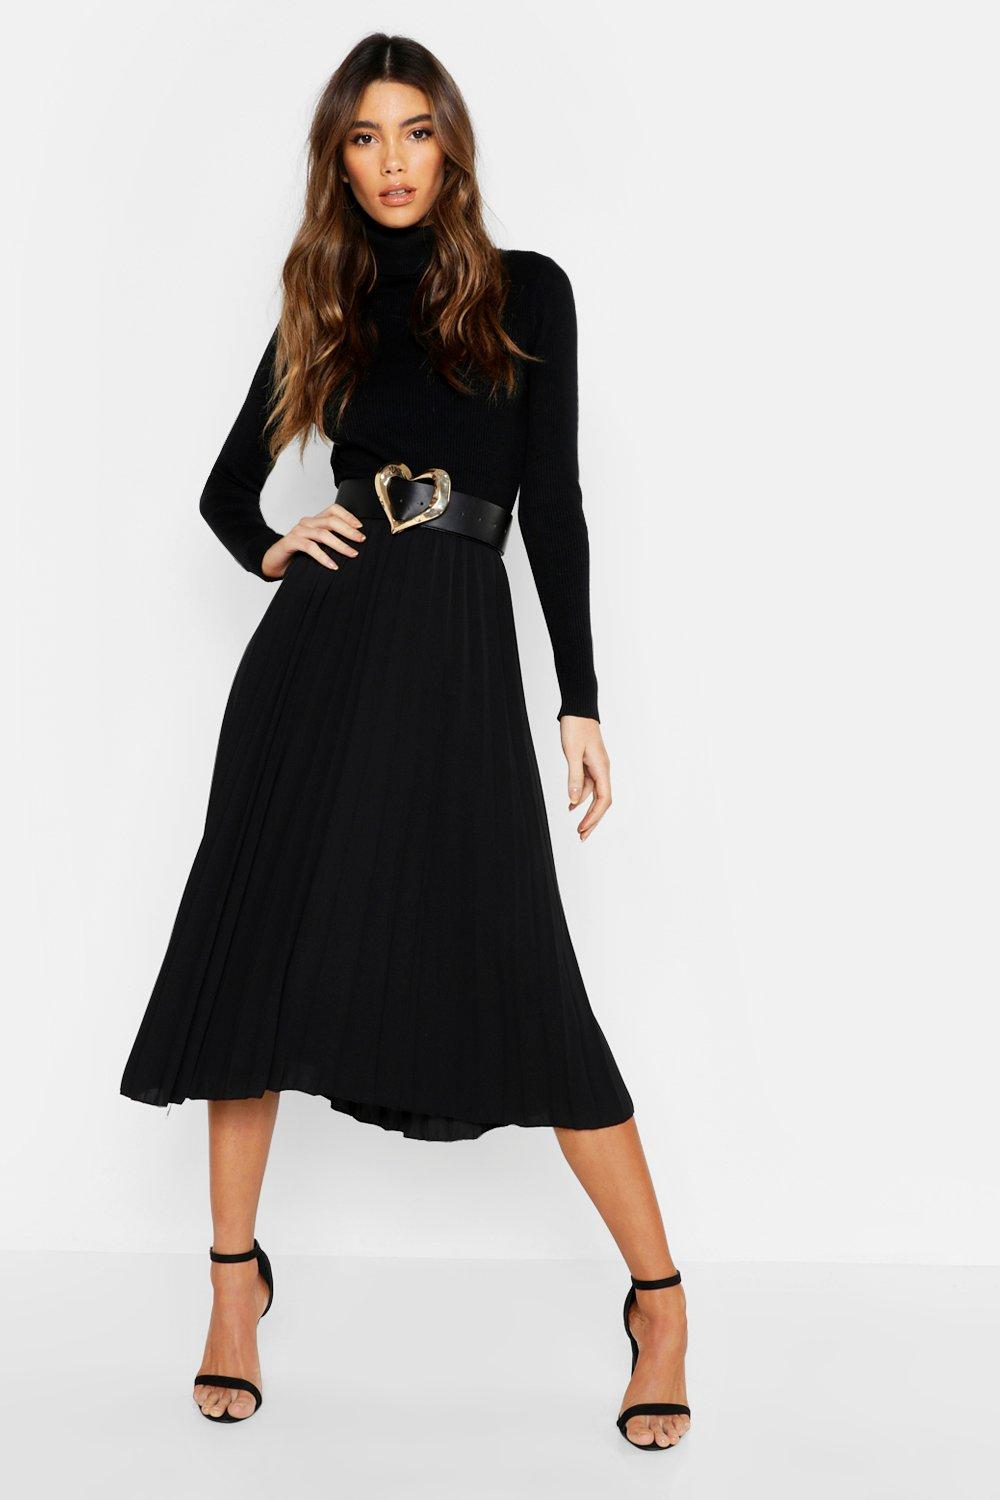 043eccd4ee Womens Black Pleated Midi Skirt. Hover to zoom